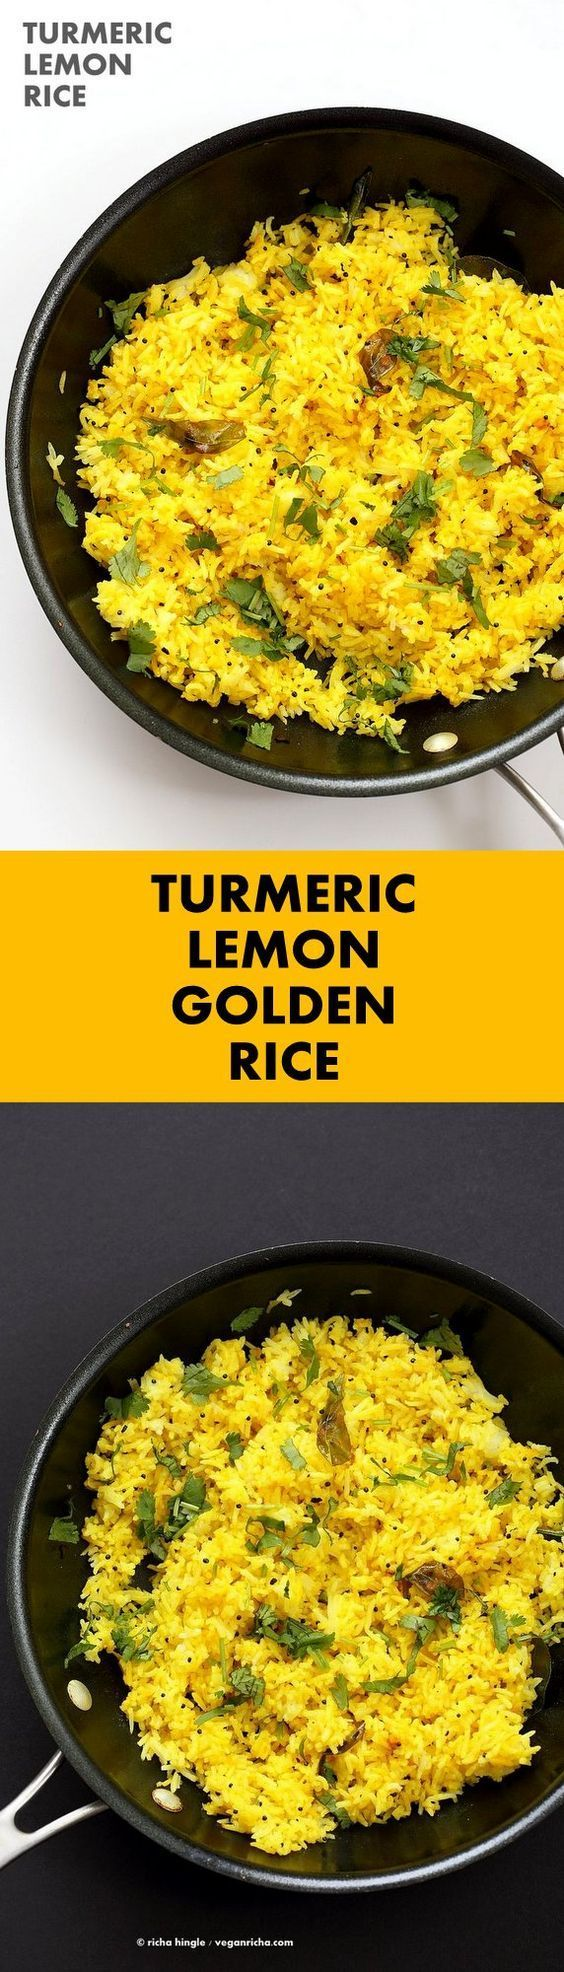 Turmeric Lemon Rice Recipe. Indian Golden Rice with turmeric, lemon and mustard seeds | VeganRicha.com